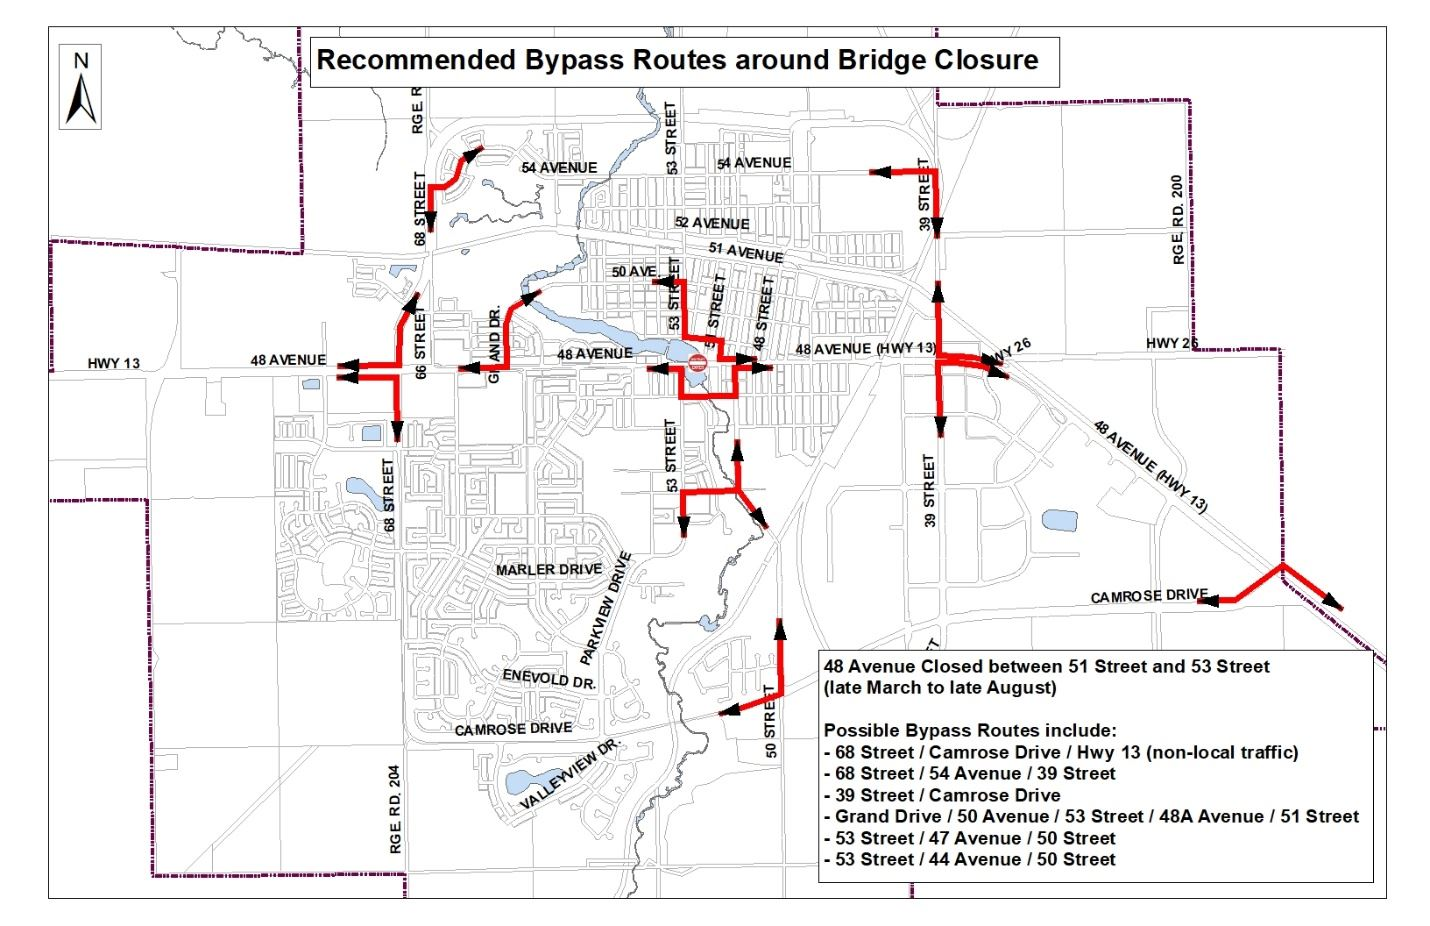 Map of Recommended Bypass Routes around Bridge Closure